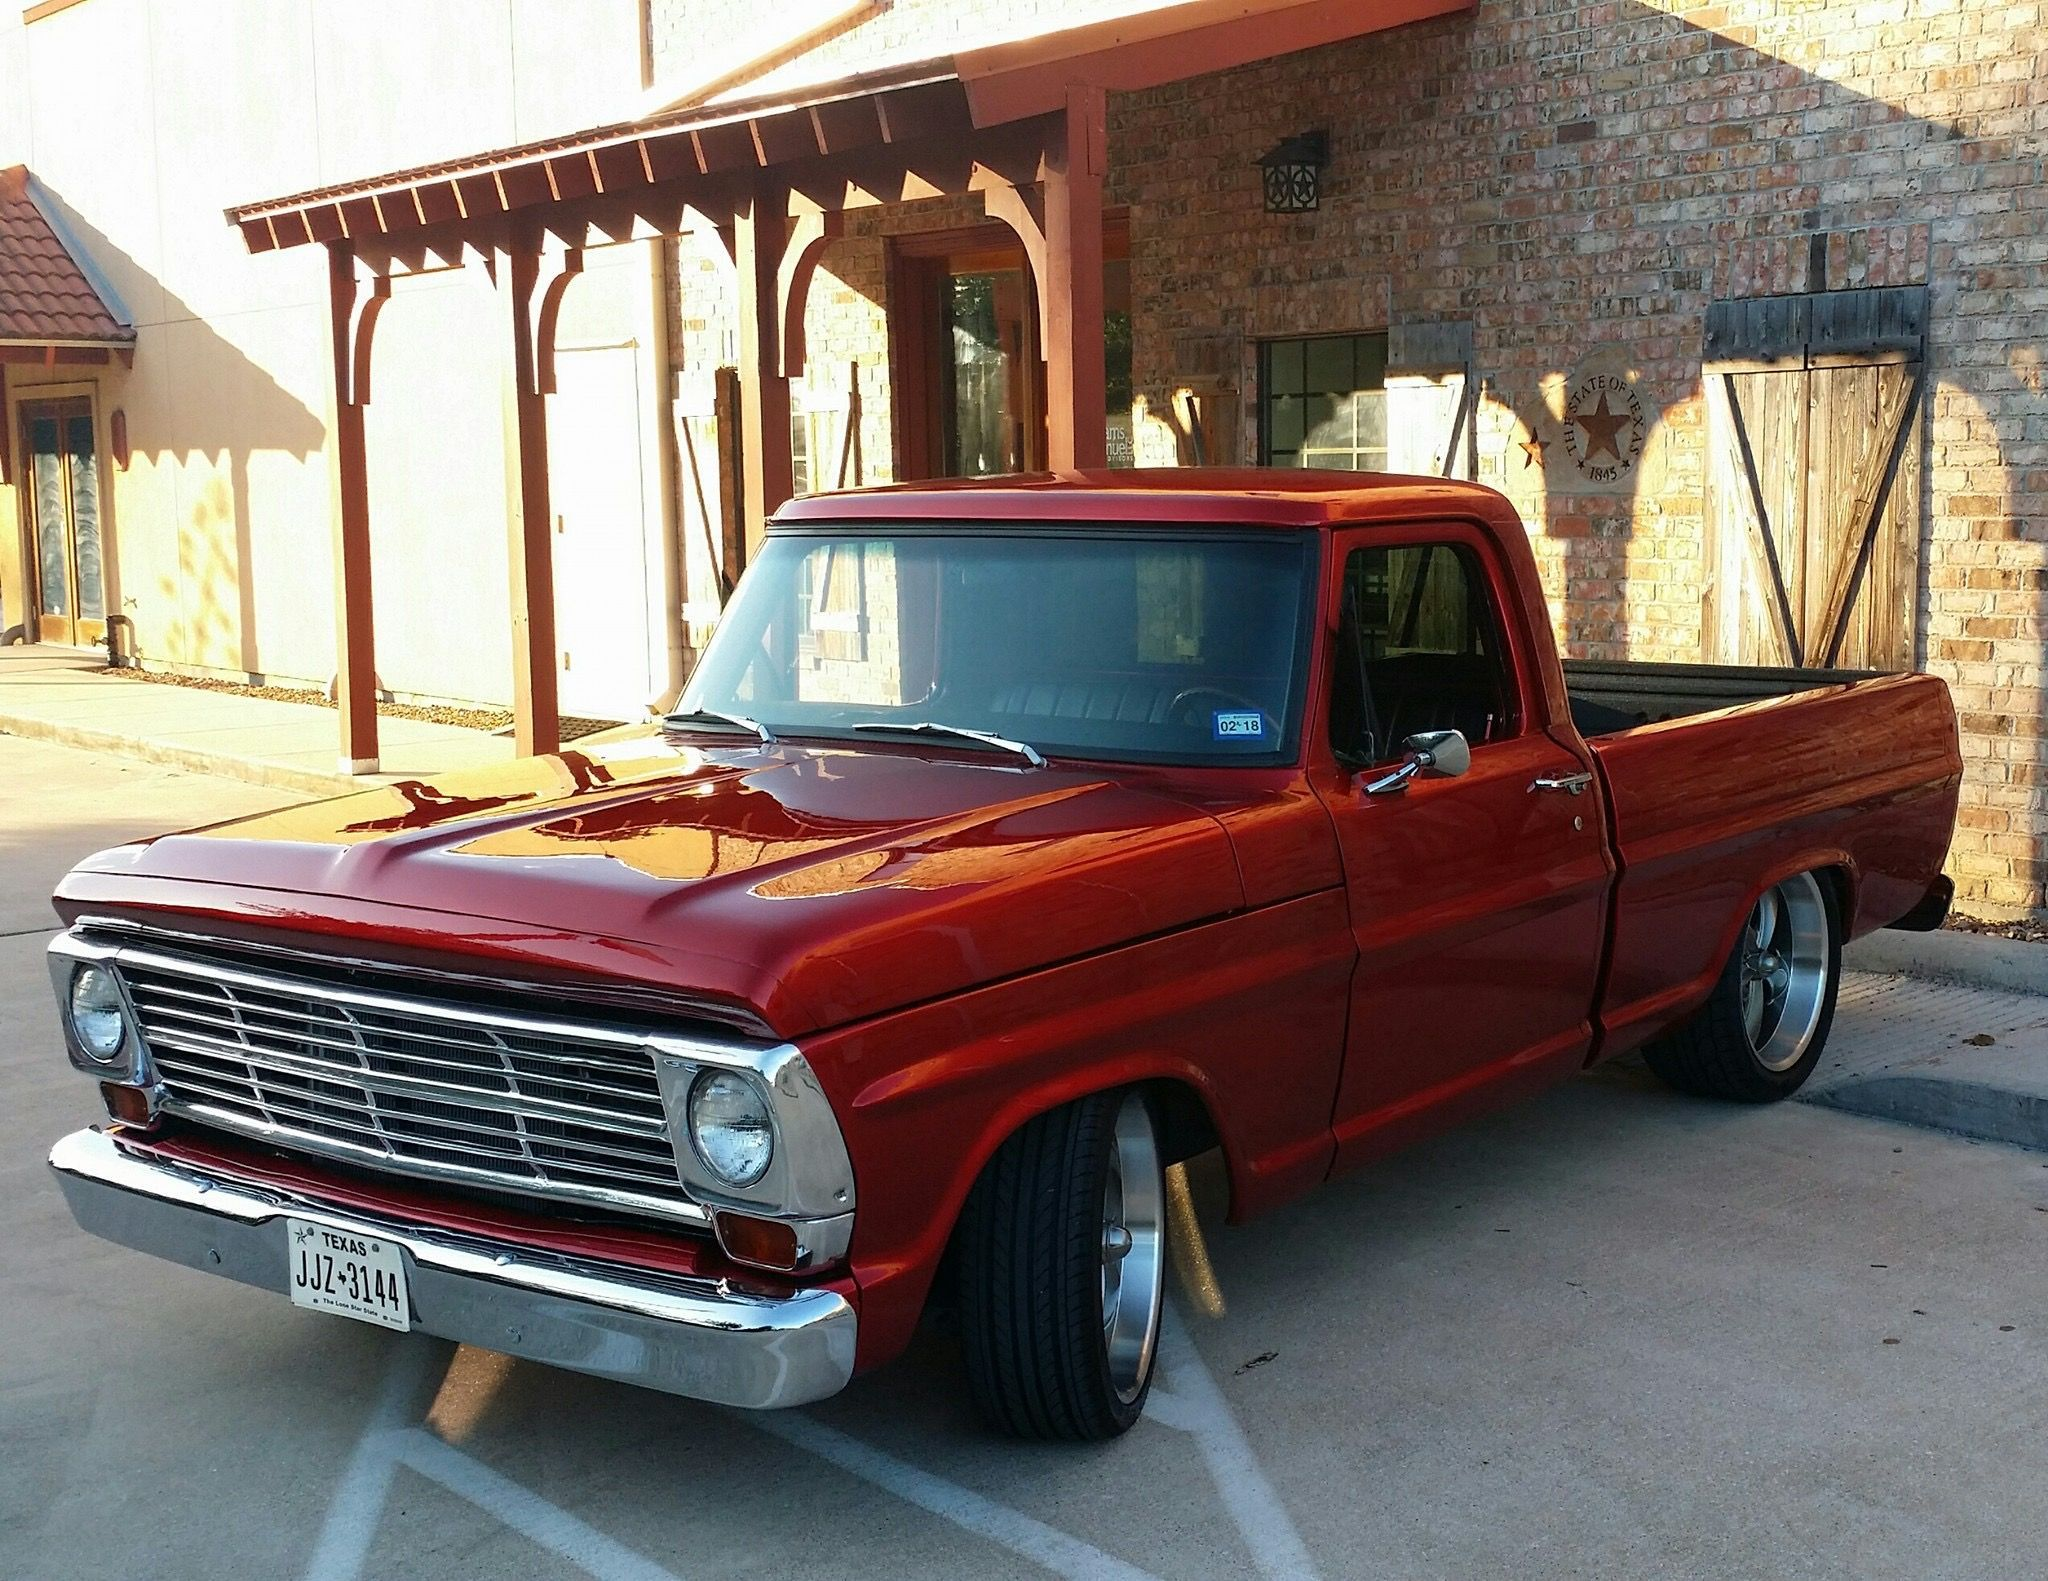 Seriously I Absolutely Love This Colouring Scheme For This Keyword 1992f150 Ford Trucks Classic Cars Trucks Old Ford Trucks